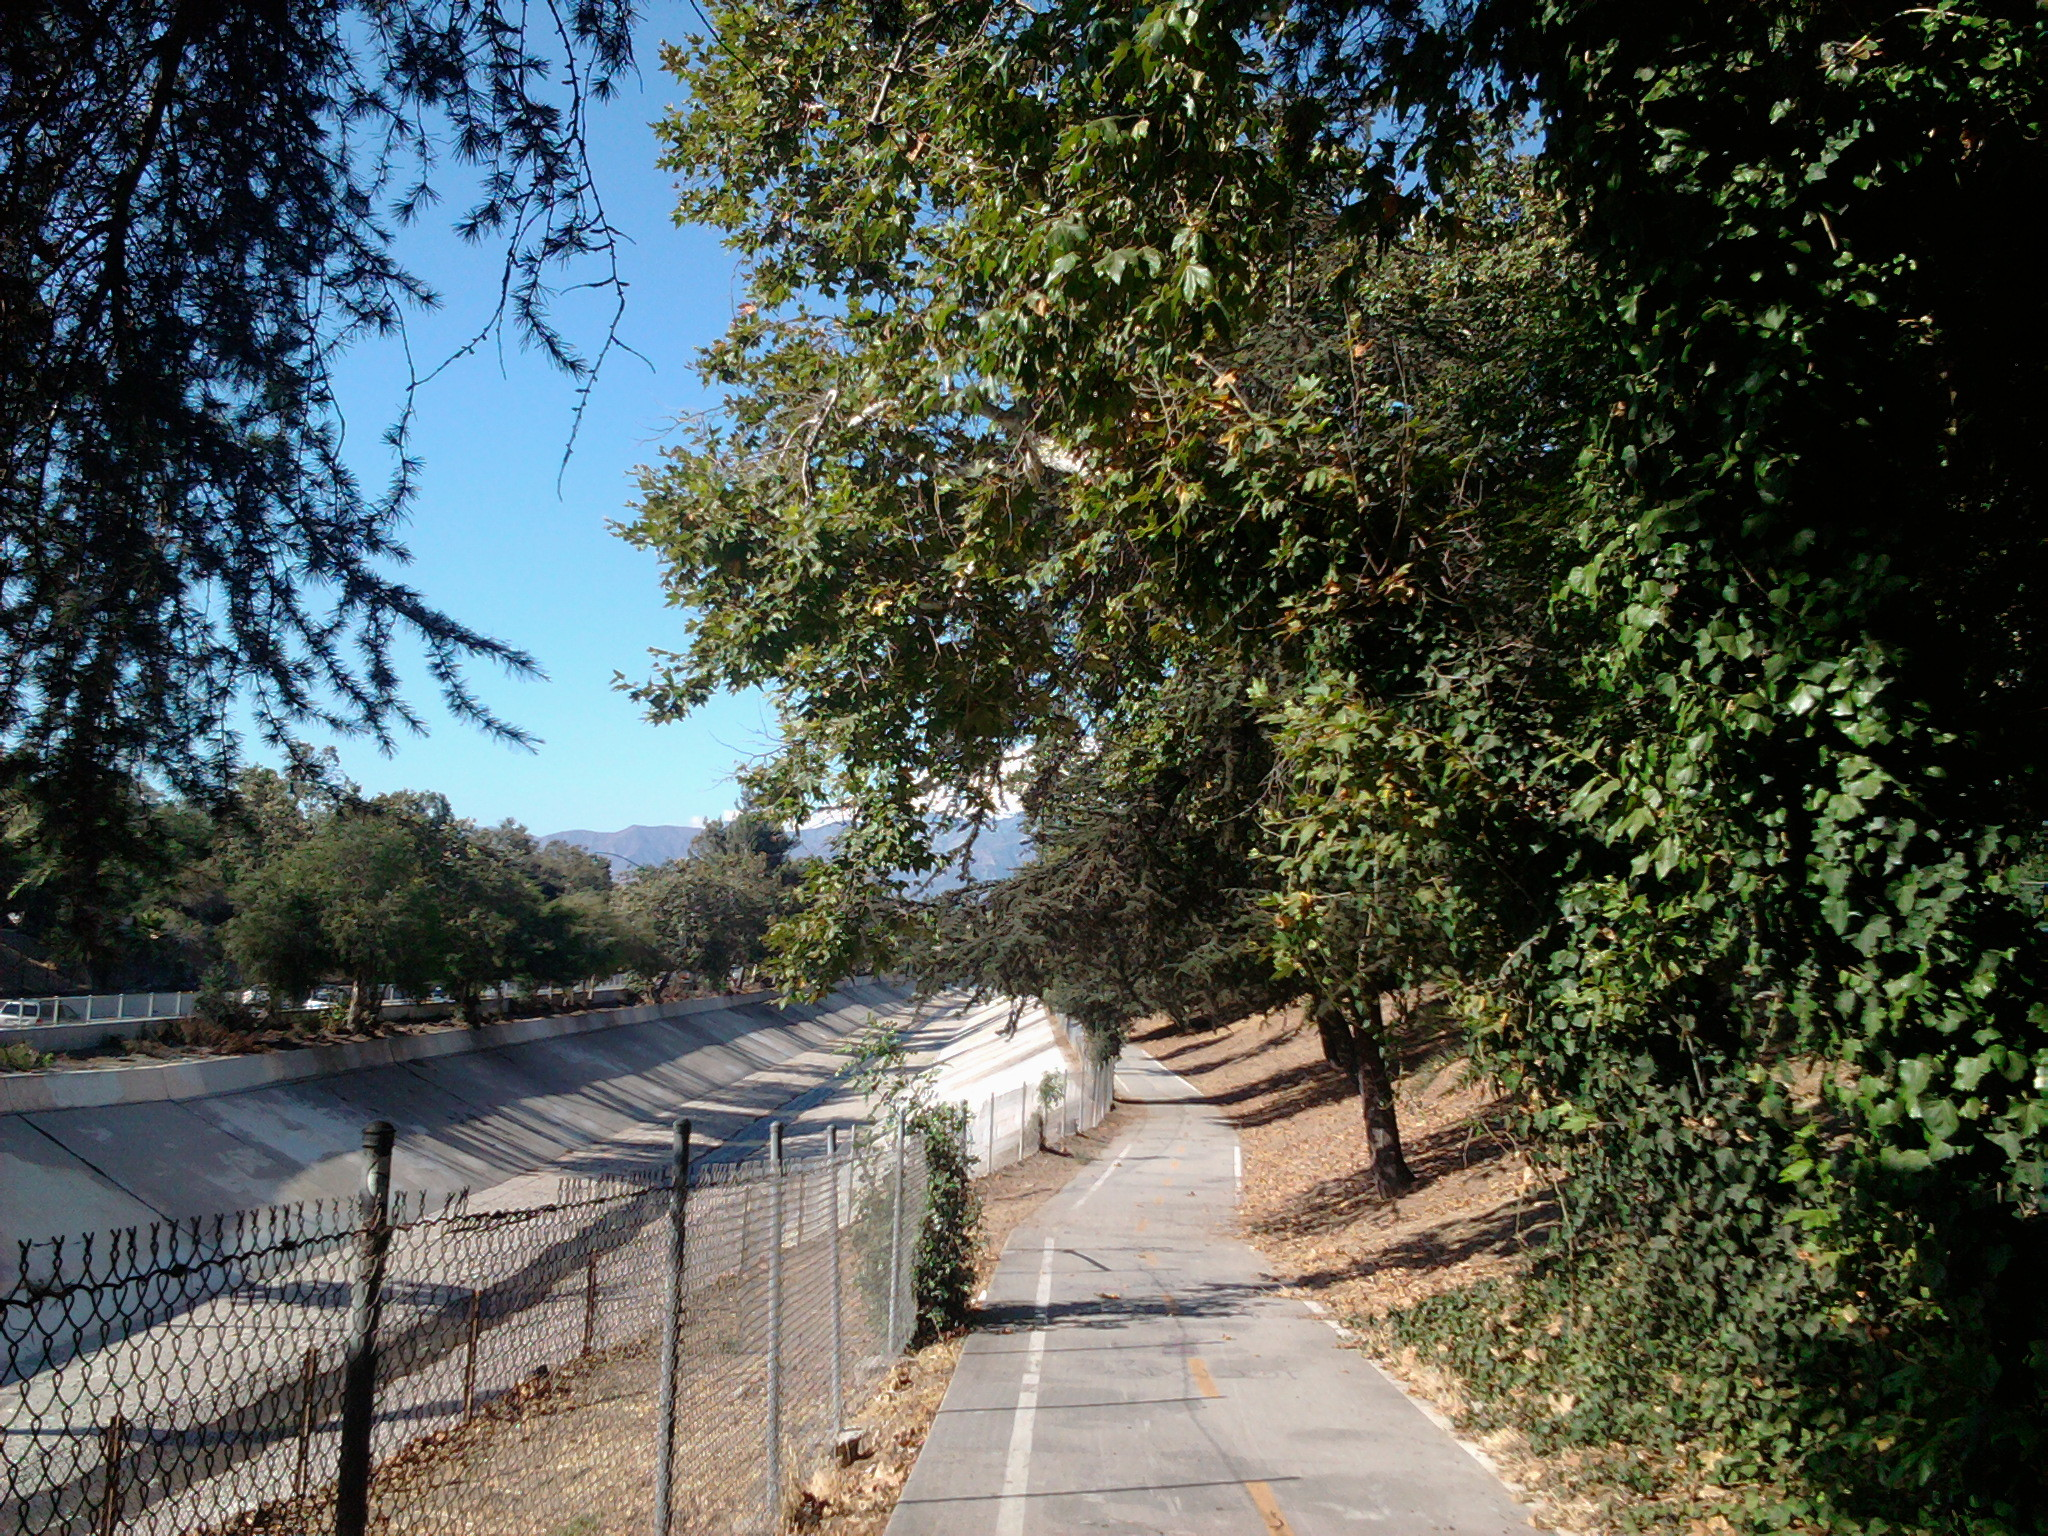 Arroyo Seco Bike Path